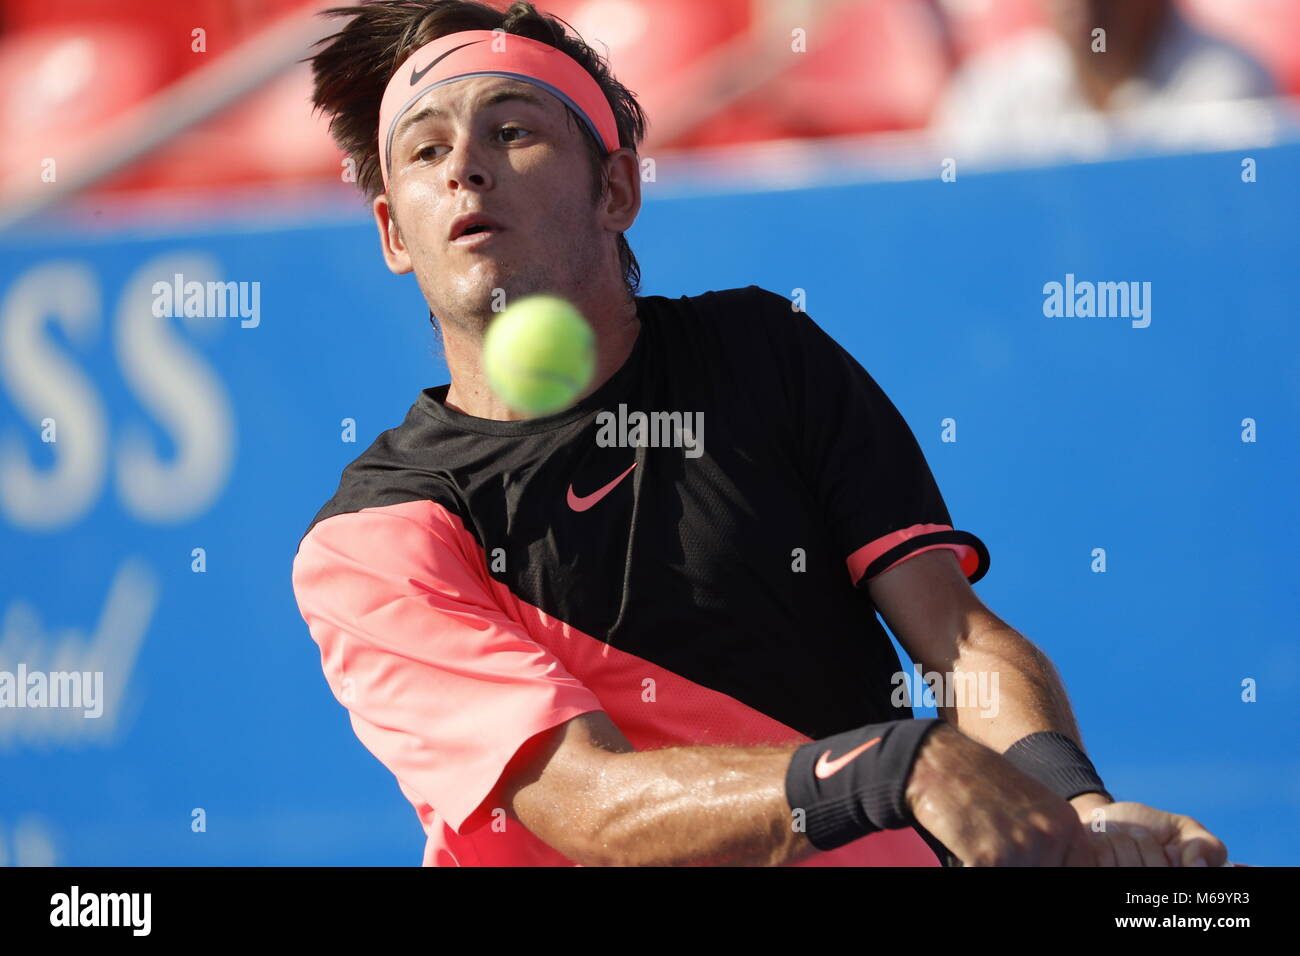 US tennis player Jared Donaldson in action against Spanish Feliciano Lopez during their Mexico Tennis Open quarter - Stock Image